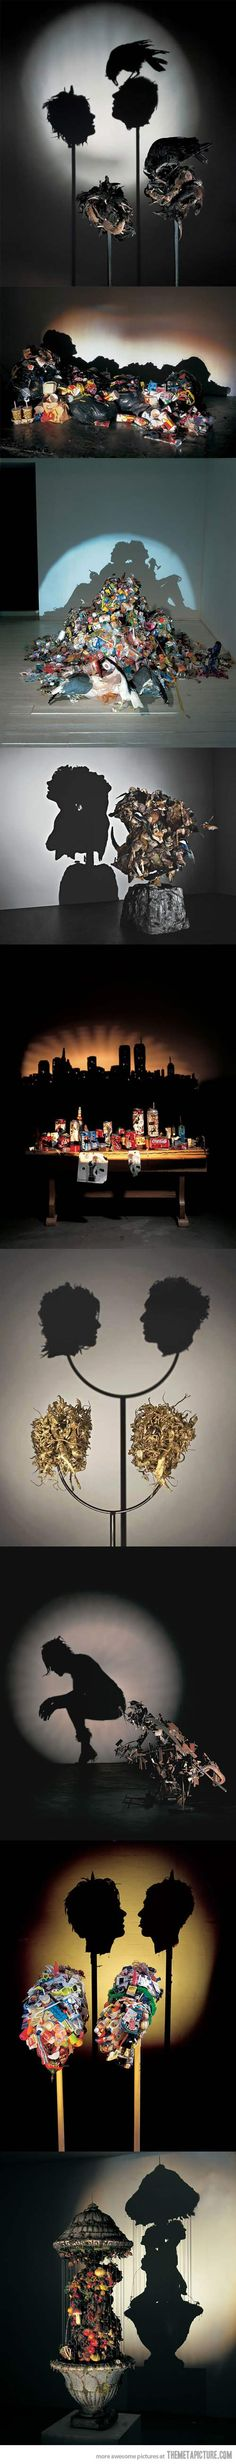 Amazing shadow art. How do they do that???